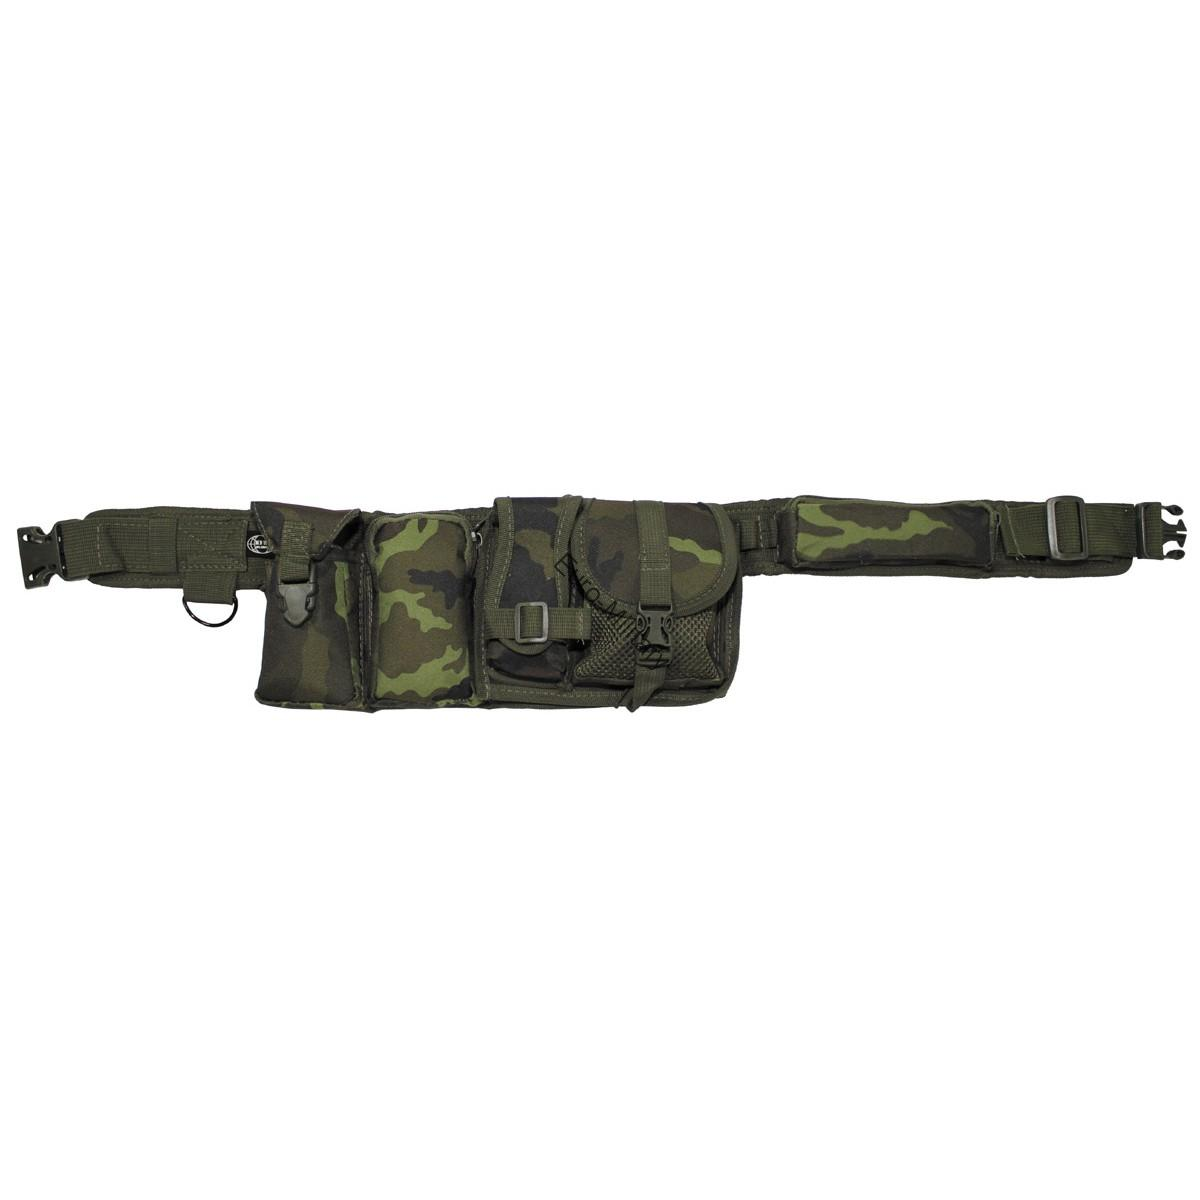 CZ M95 Camo Pattern Battle 6 Pocket Waist Belt